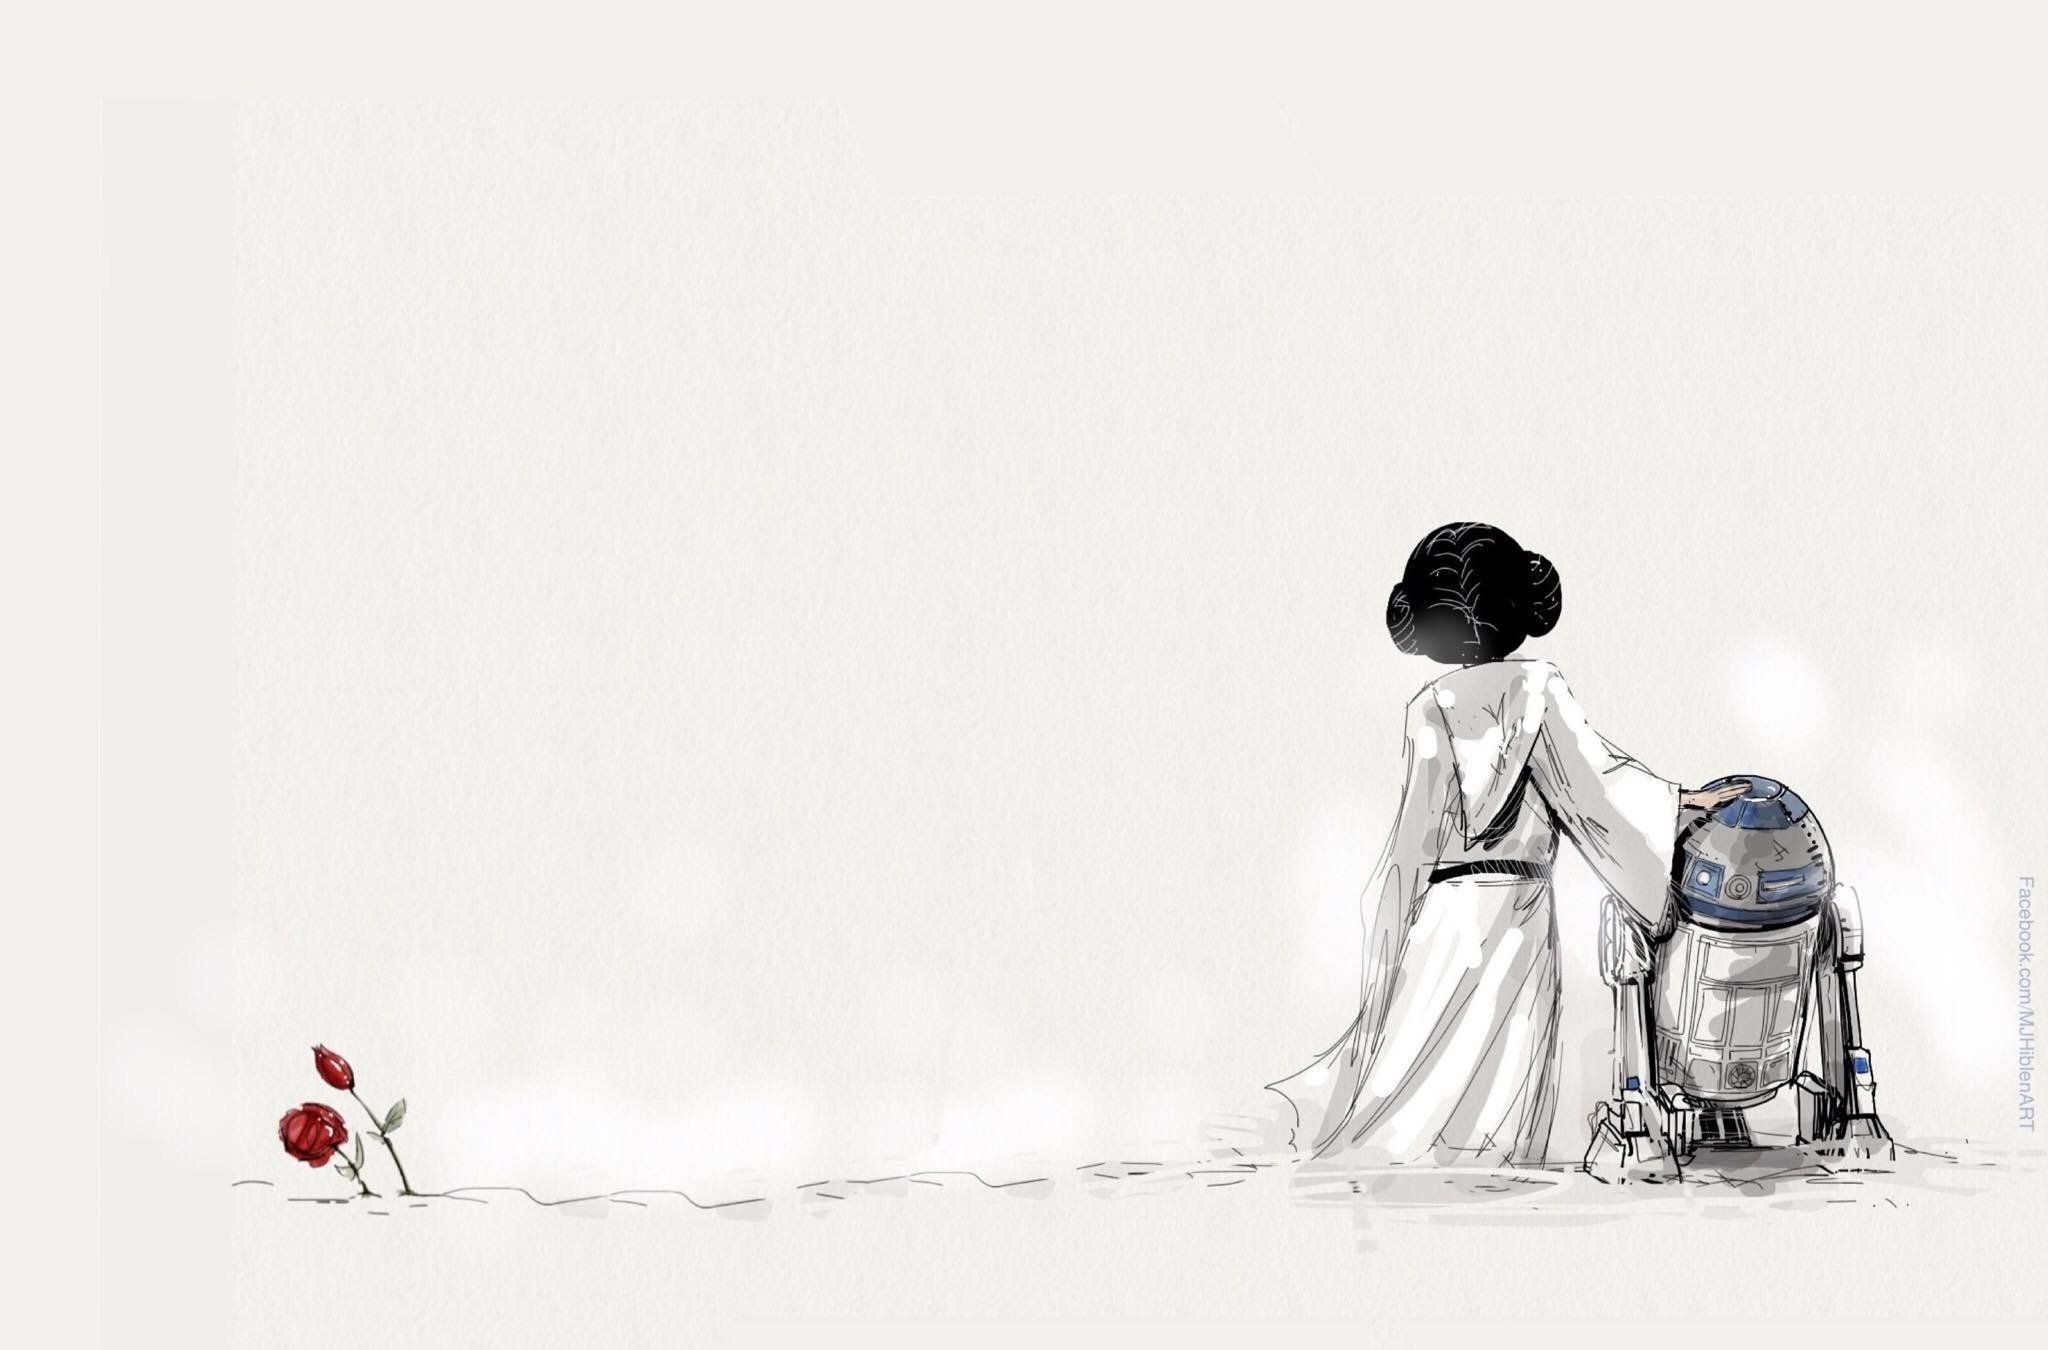 """A simple but touching tribute by MJ Hiblen to Carrie Fisher, who played Princess Leia in the """"Star Wars"""" films, a"""